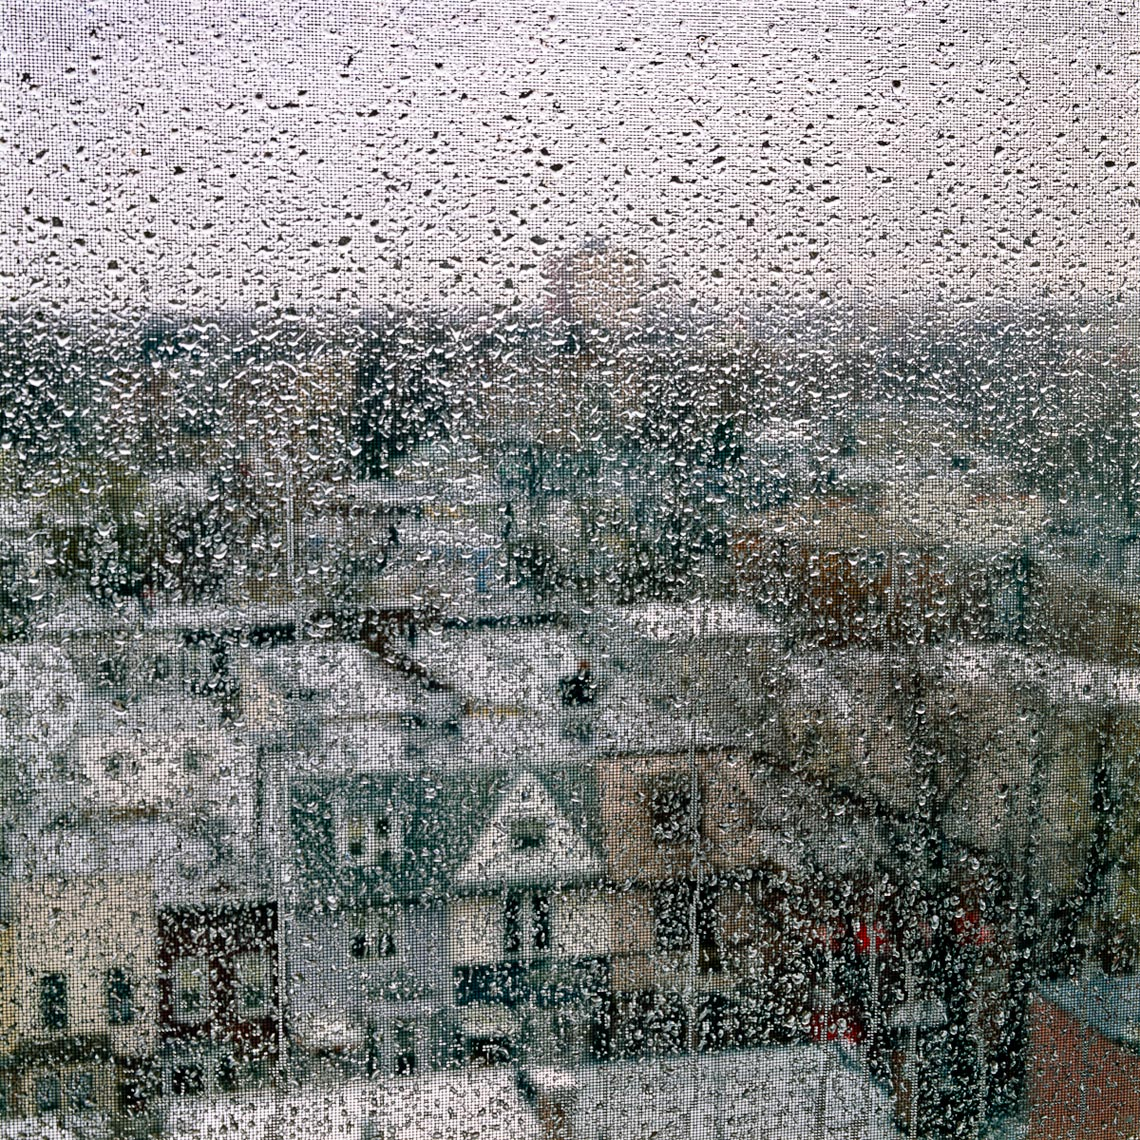 Rain on Brooklyn window